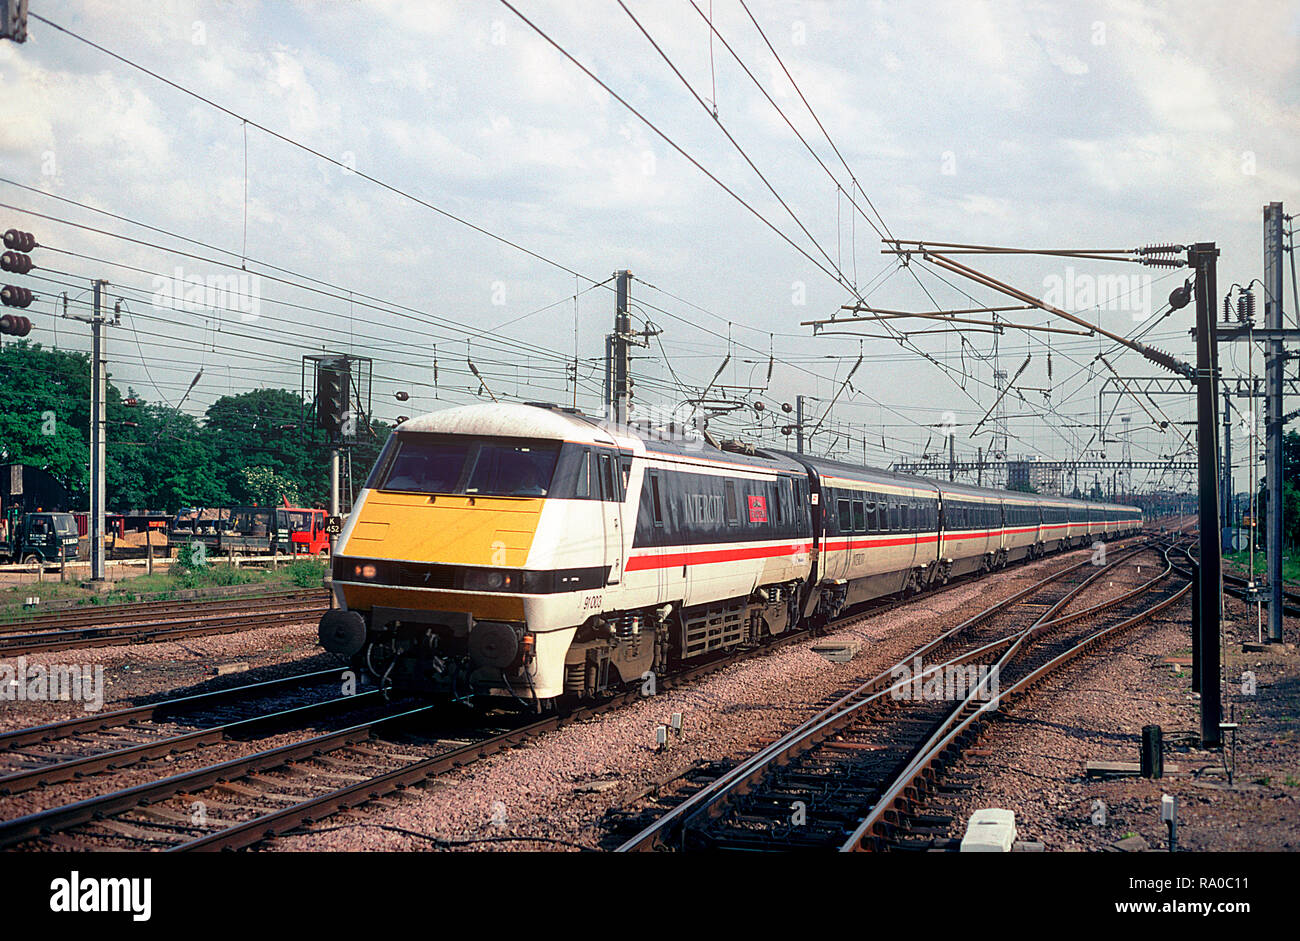 intercity swallow high resolution stock photography and images alamy https www alamy com a class 91 electric locomotive number 91003 heads north with an east coast main line intercity service at alexandra palace on the 1st july 1994 image229890781 html